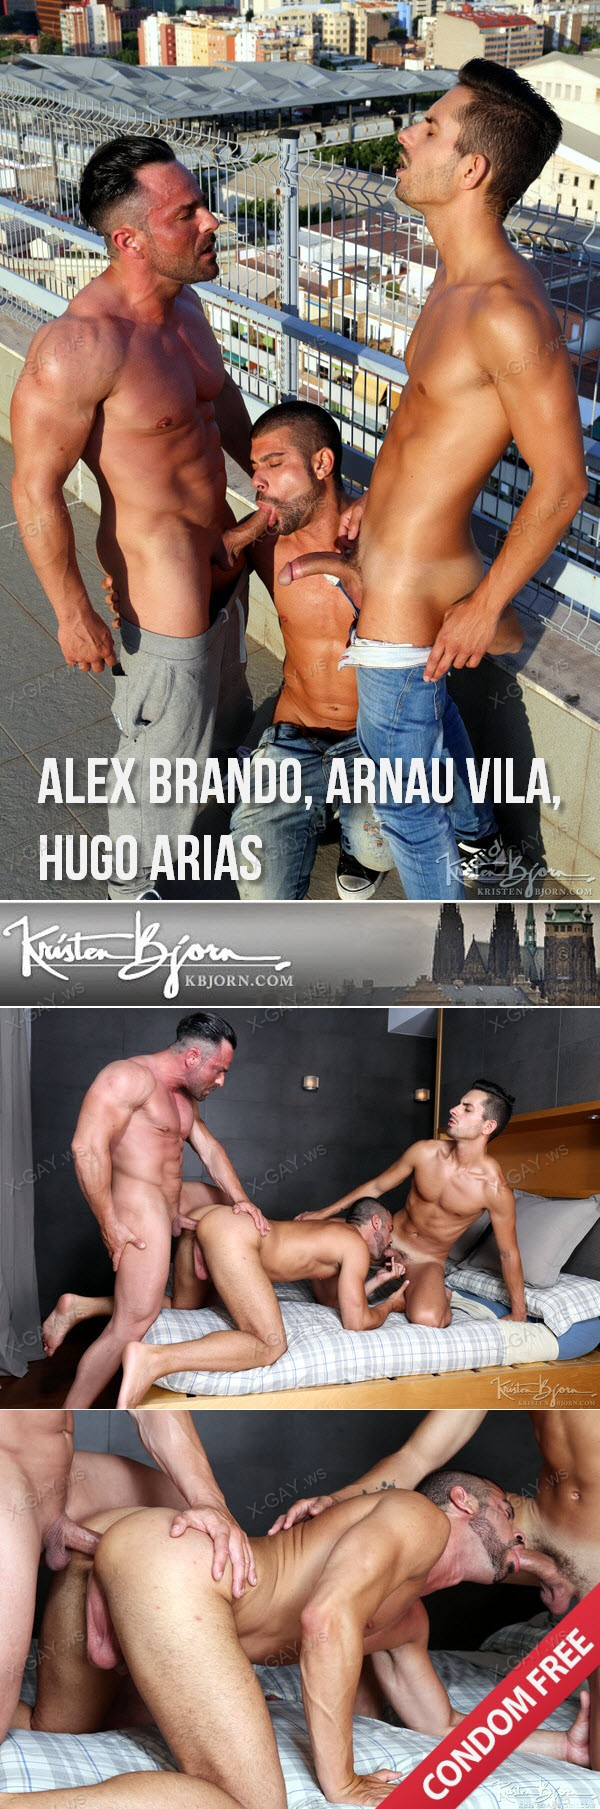 KristenBjorn: In The Flesh, Sc. 3 (Alex Brando, Arnau Vila, Hugo Arias) (Bareback)